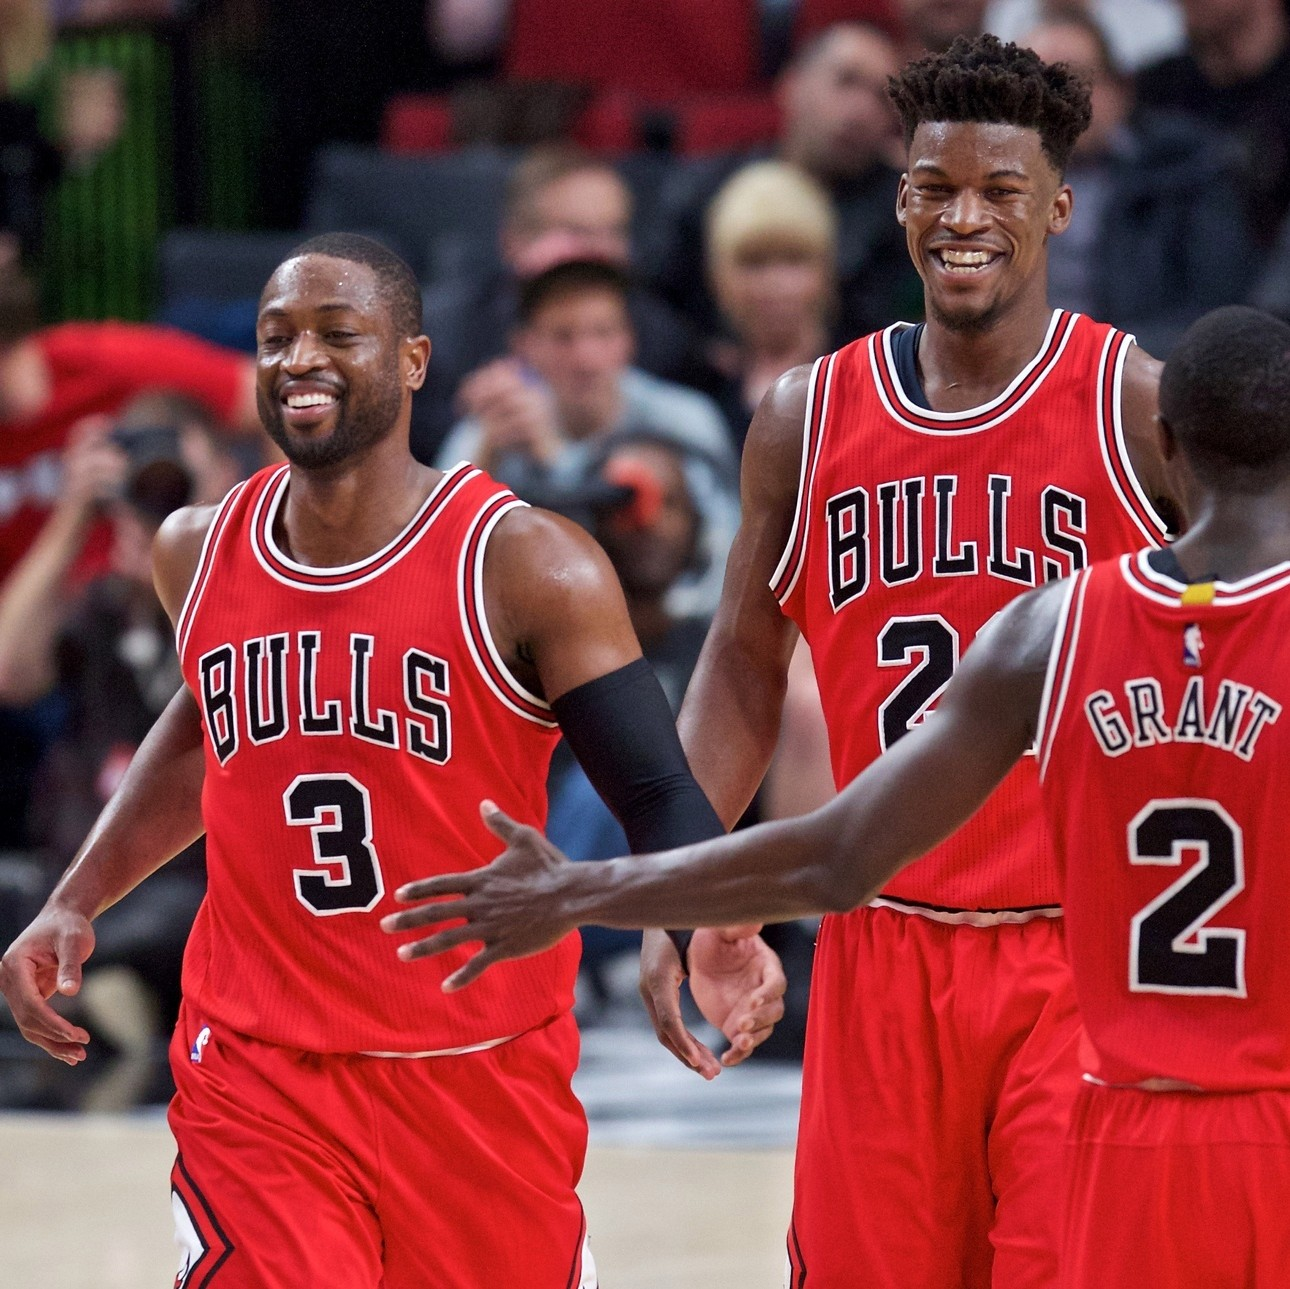 How-the-chicago-bulls-are-getting-it-done-adam-mares-nba-wraparound-1481299213.jpg?crop=0.645224171539961xw:1xh;0